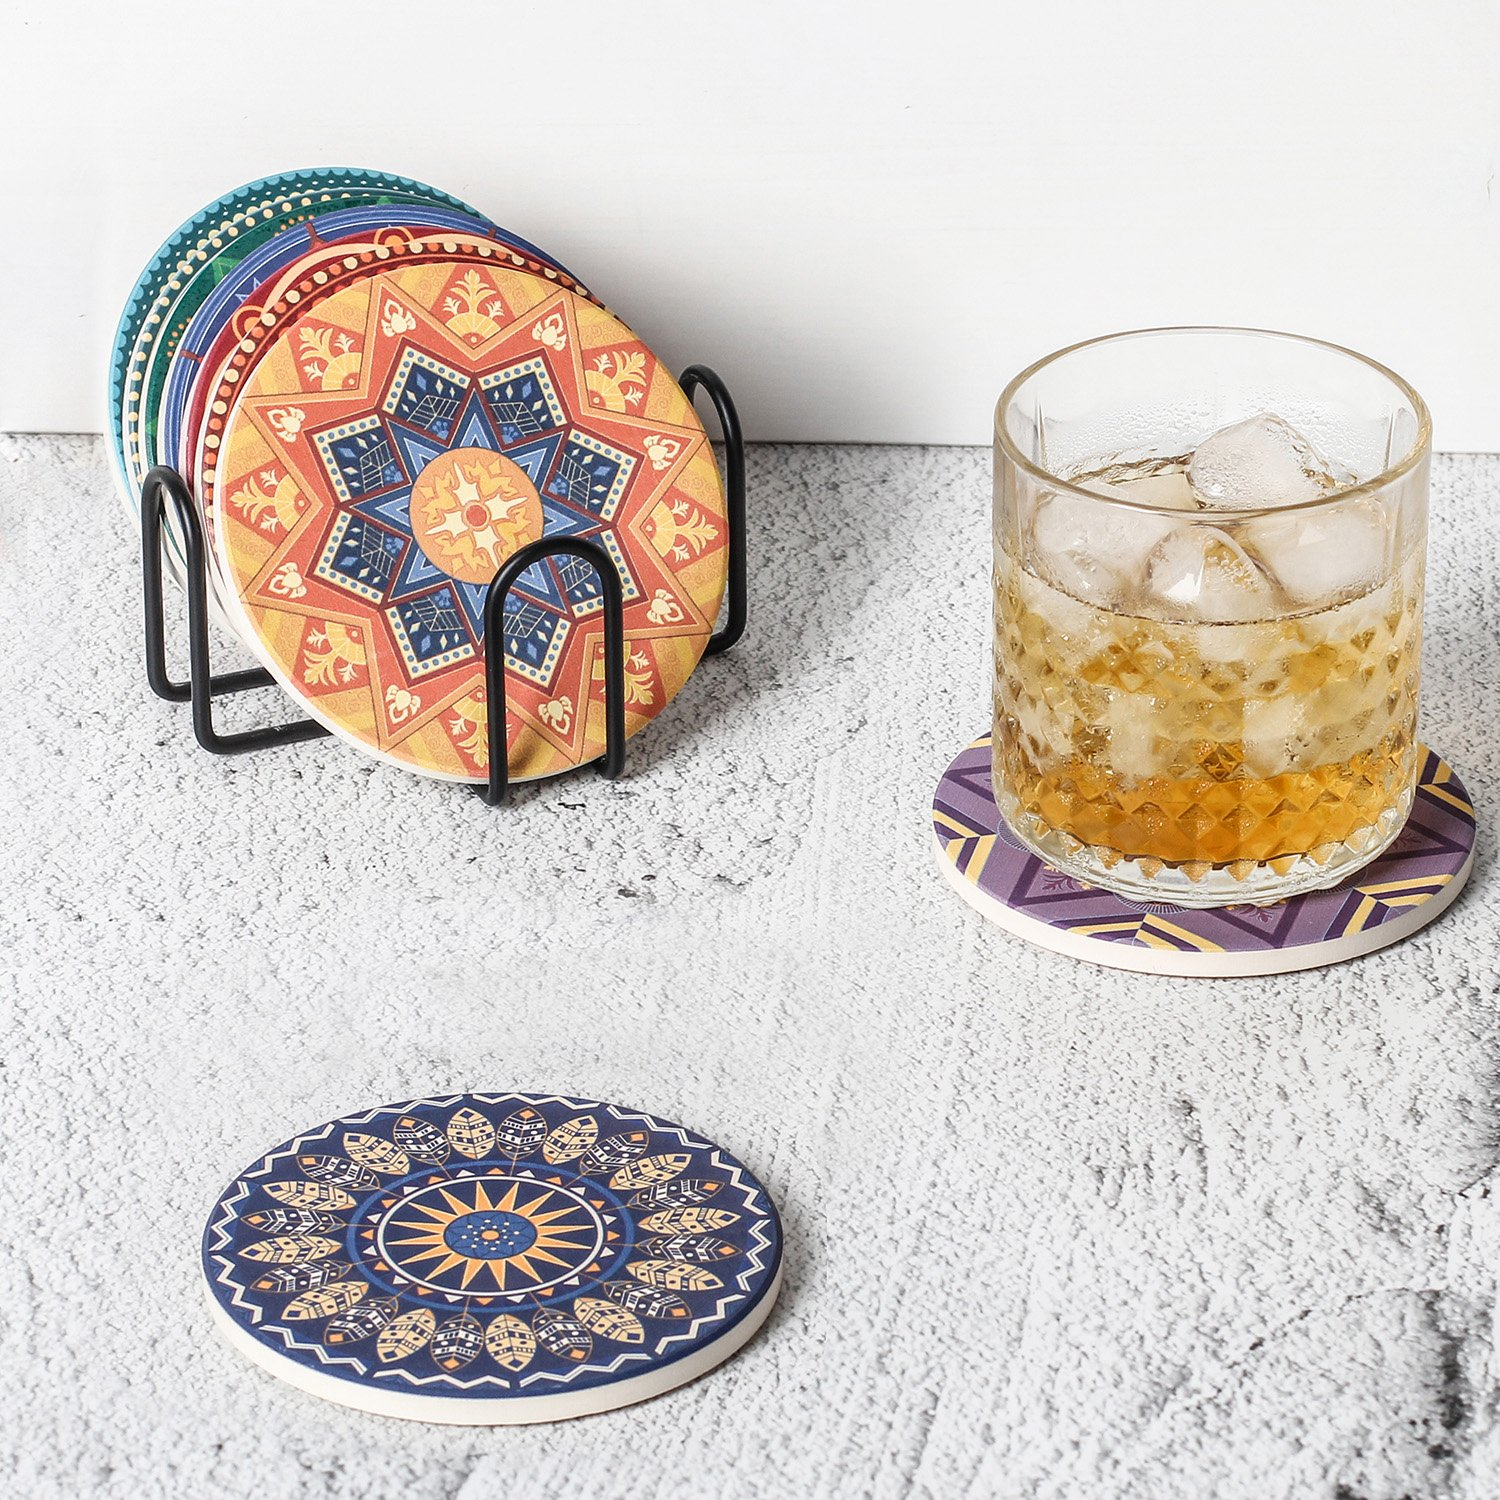 Lifver 4.5 Inch Black Iron Metal Coasters Holder For Both Round and Square Coasters, Hold Up To 7 Lifver Coasters by Lifver (Image #4)